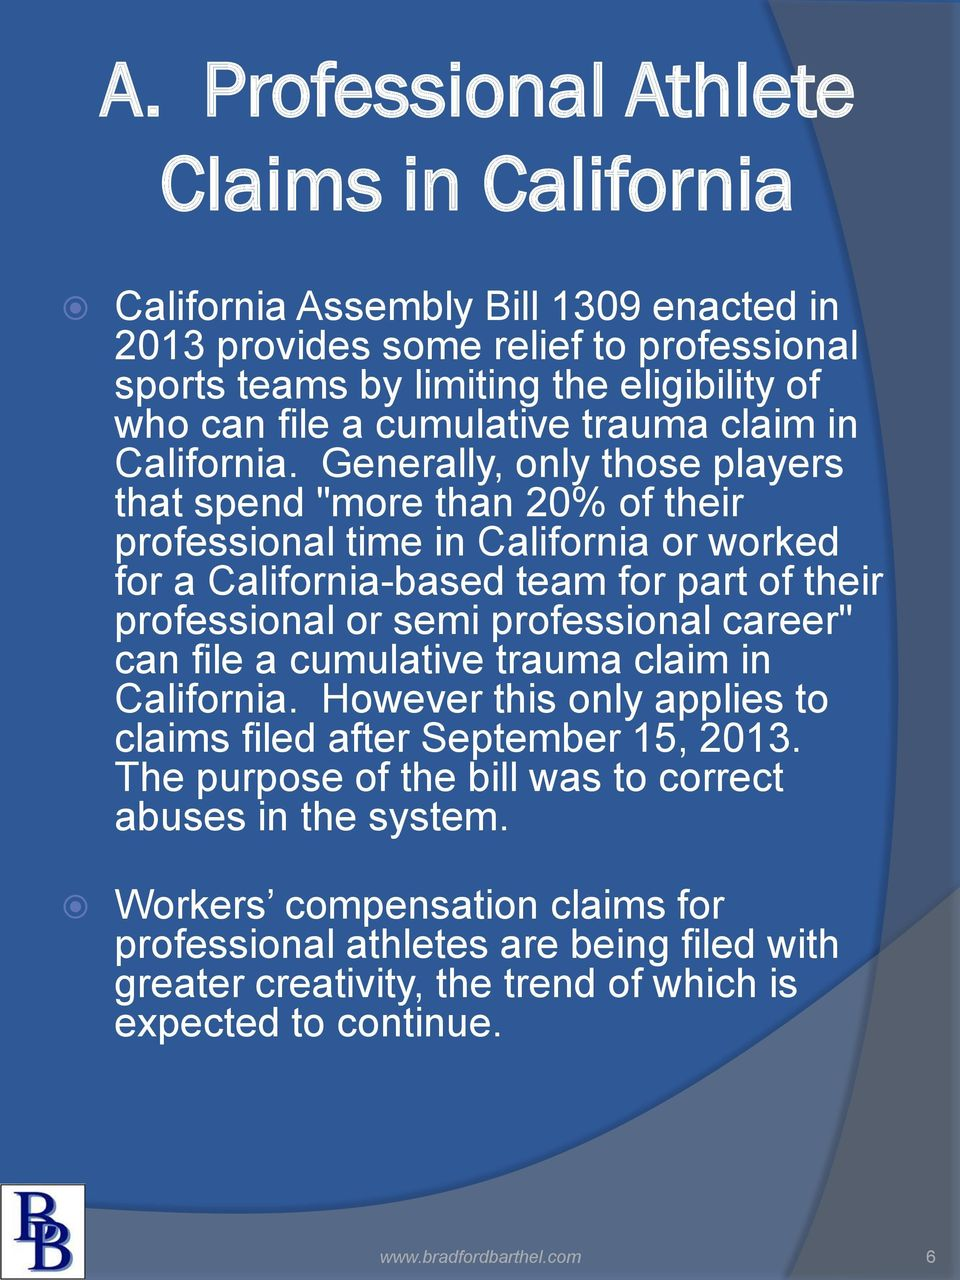 "Generally, only those players that spend ""more than 20% of their professional time in California or worked for a California-based team for part of their professional or semi professional"